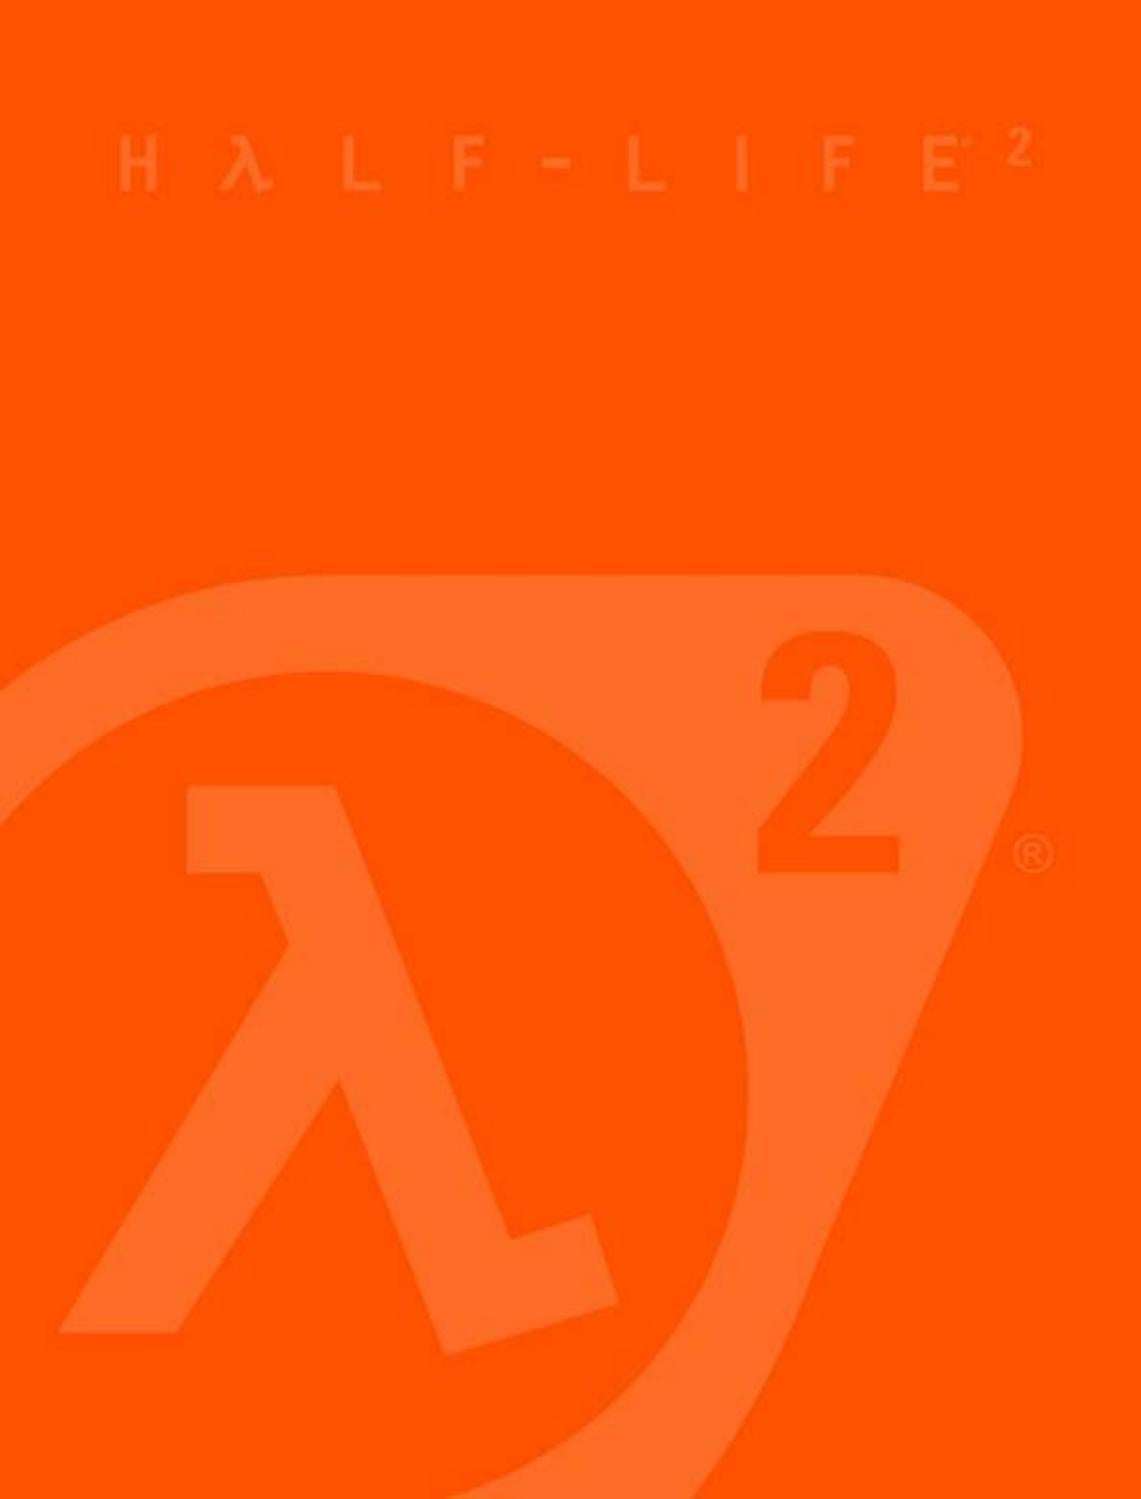 Half Life 2 Official Game Guide By Demidari Issuu Driving Recorder Refires Power Cable Small Fuse Cigarette Lighter Wire